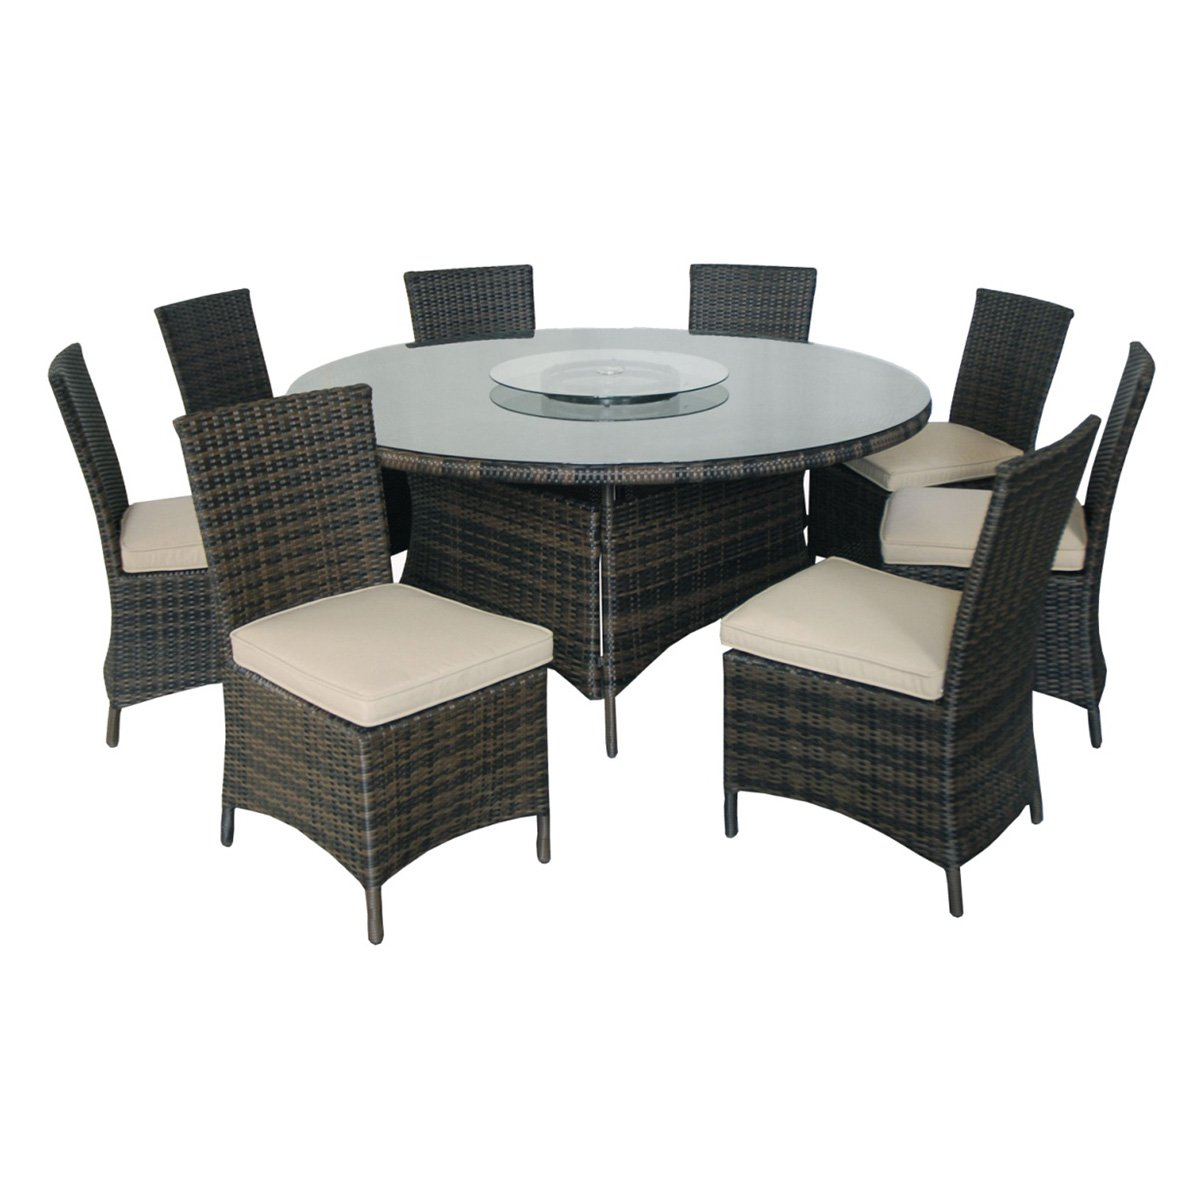 Creative Living Monte Carlo 9 Piece Round Patio Dining Set - Walmart.com